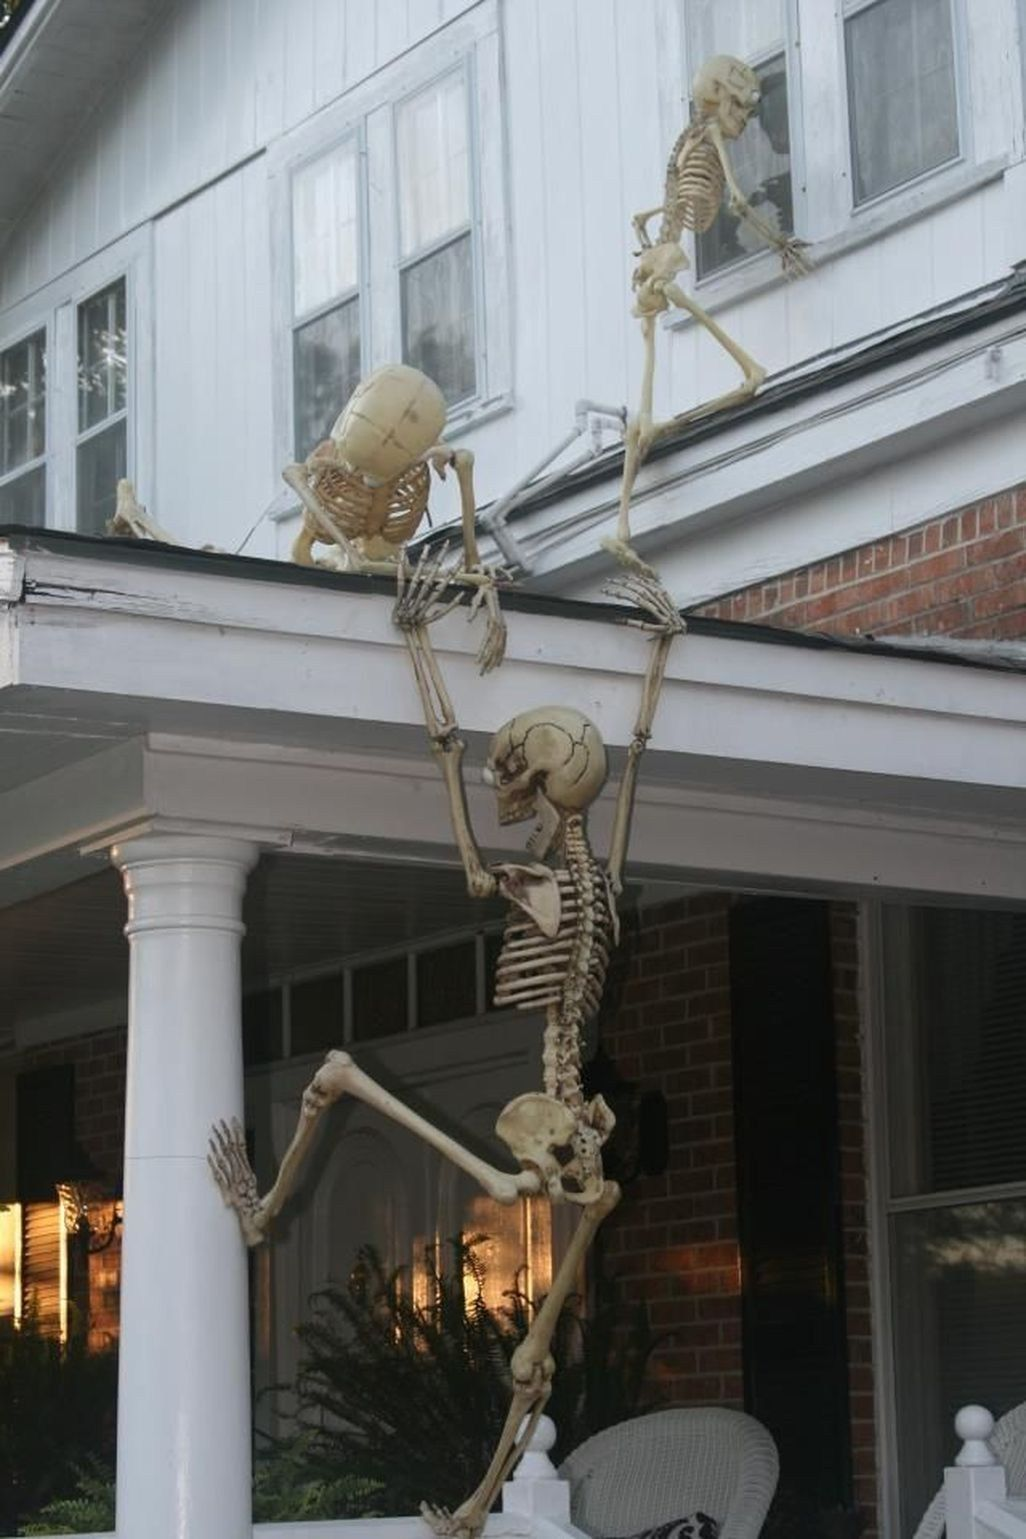 Extravagant Outdoor Halloween Decorations That Everyone Will Be - Pinterest Outdoor Halloween Decorations